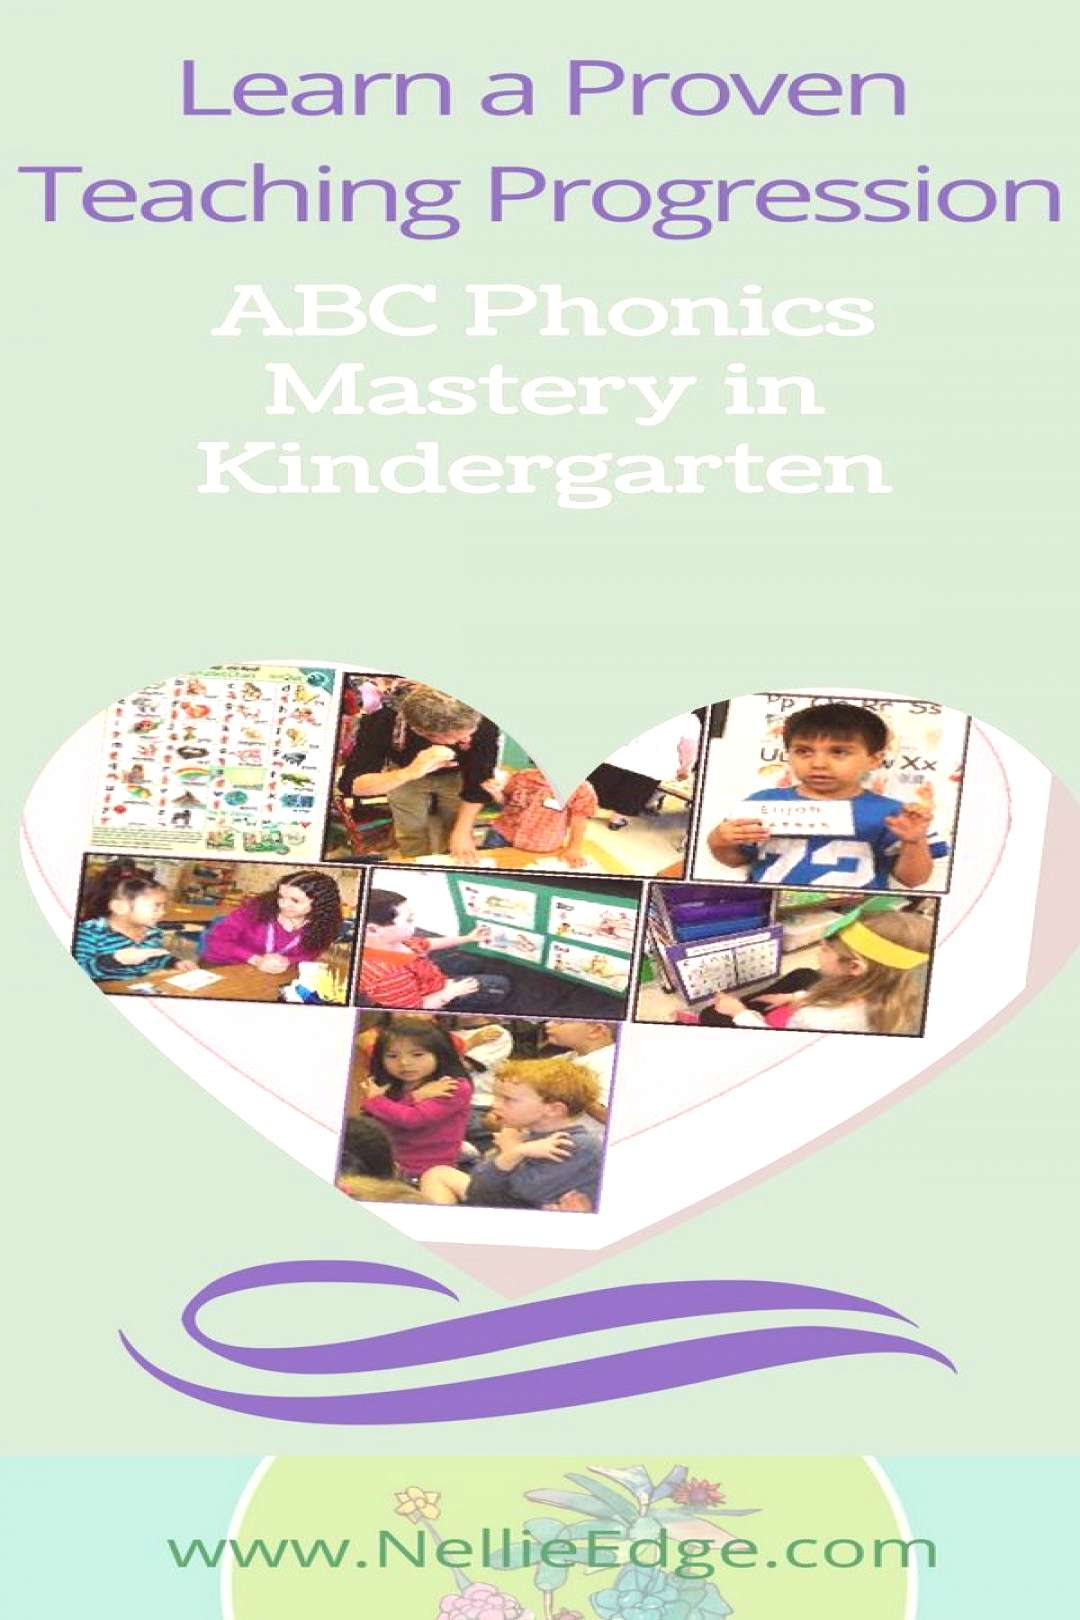 How the Components of the Nellie Edge ABC Phonics Program Discover the easiest, most delightful way